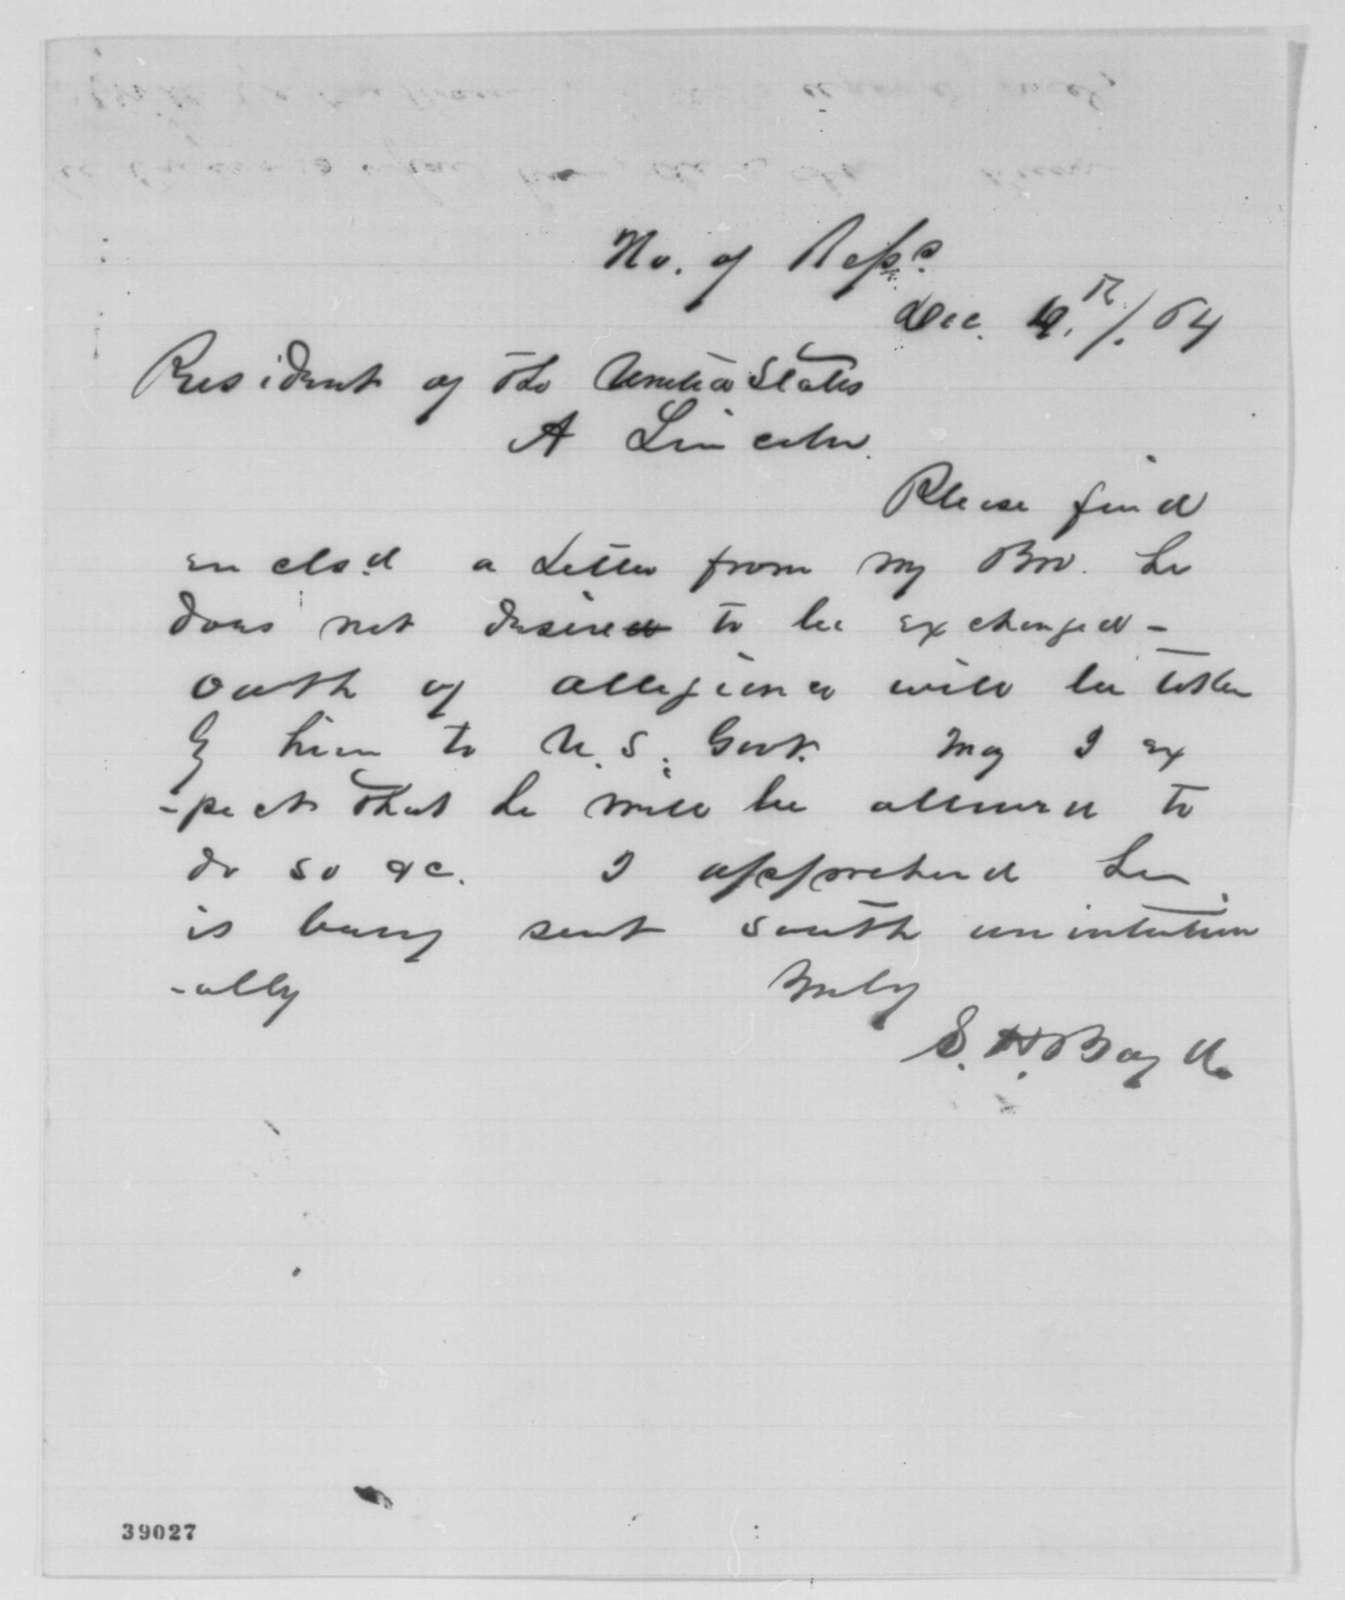 Sempronius H. Boyd to Abraham Lincoln, Sunday, December 04, 1864  (Cover letter)